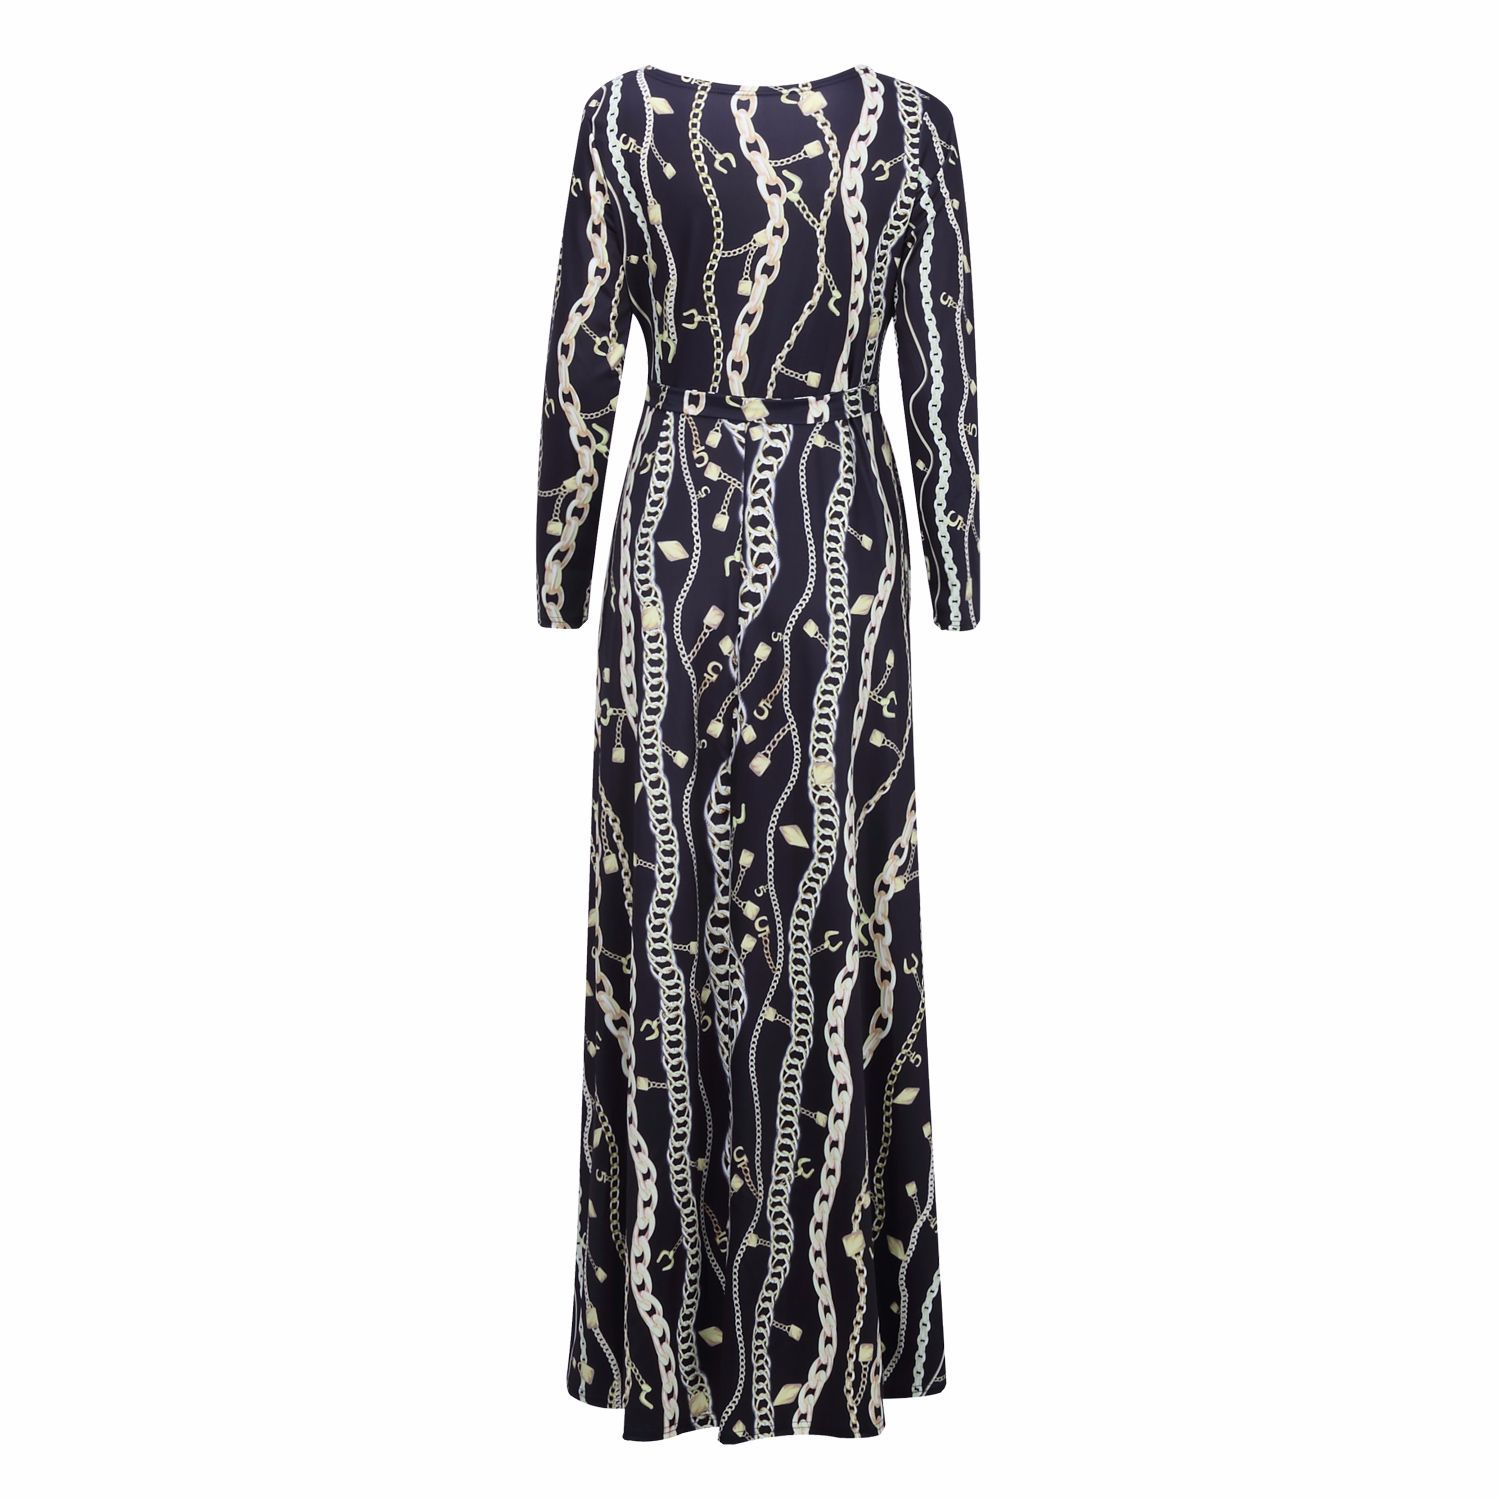 Women plus size floral printed Sexy Deep V Neck Loose Dress Stretch Casual floral maxi dress